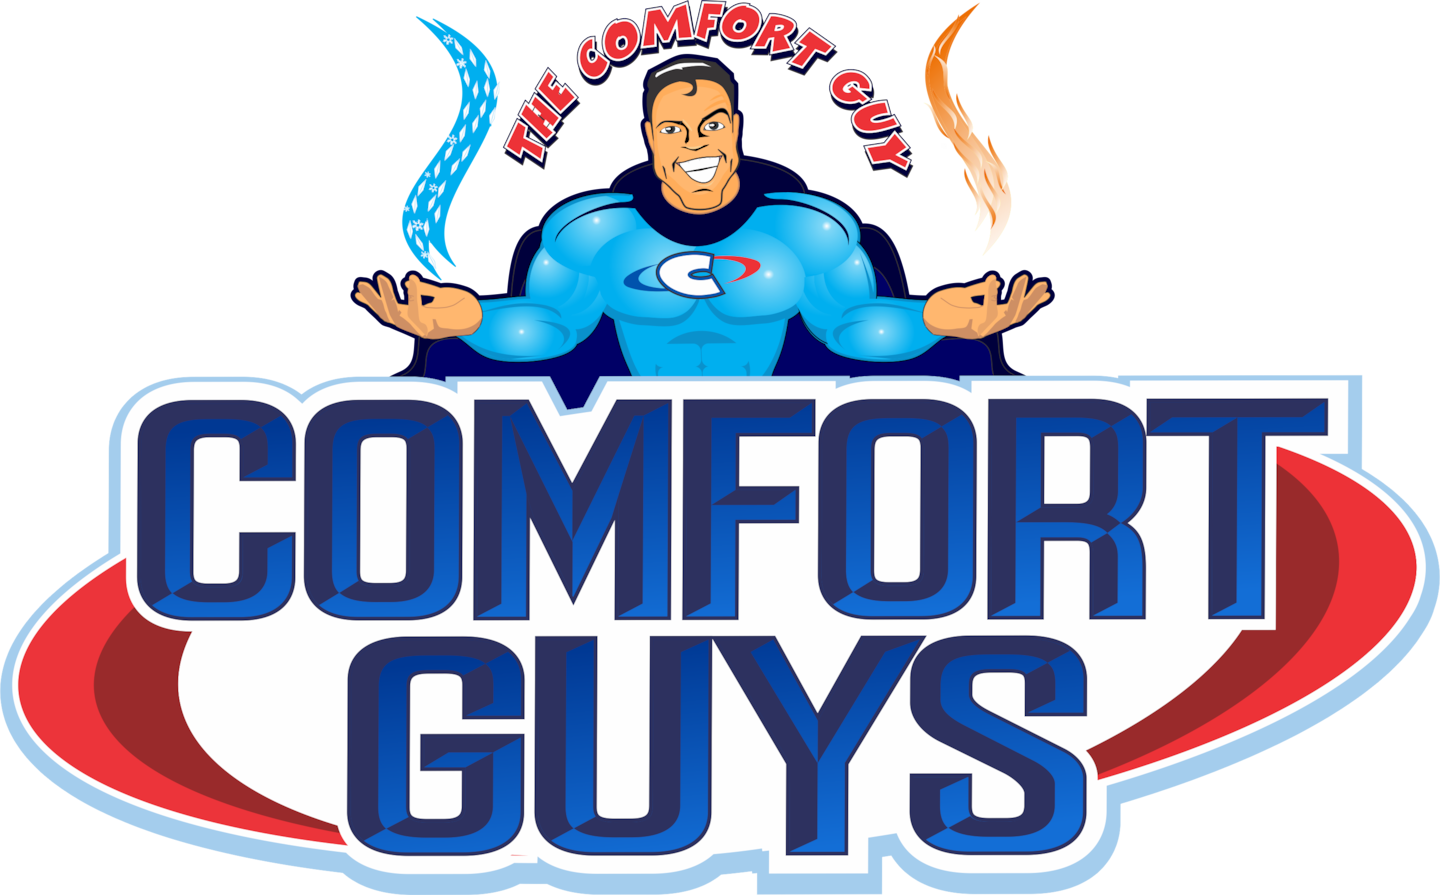 ComfortGuy / R & S Mechanical Heating & AC Services logo